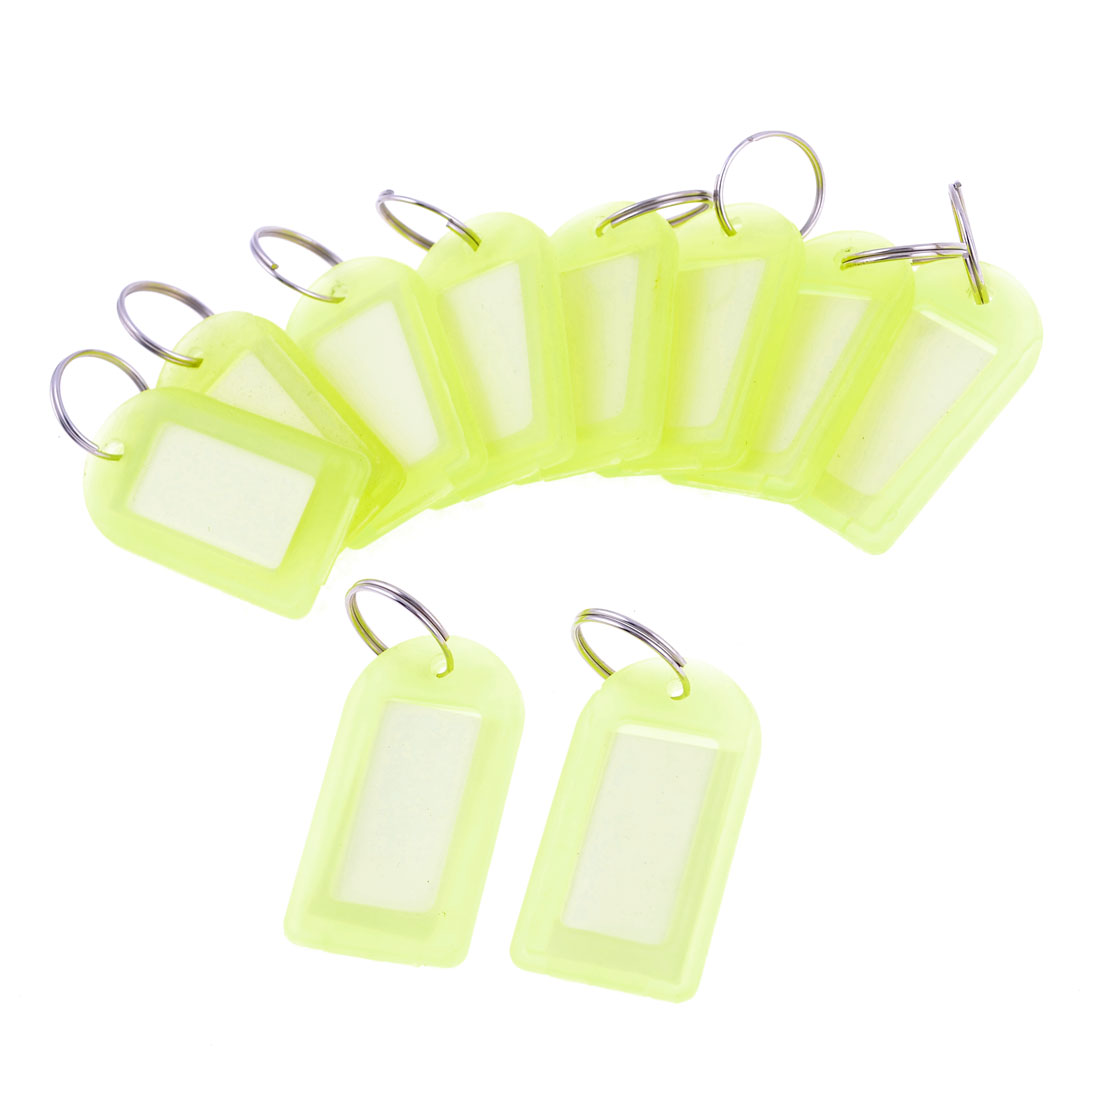 Supermarket 10 Pcs Light Yellow Plastic Name Tag Badge Clip Holder w Key Chain